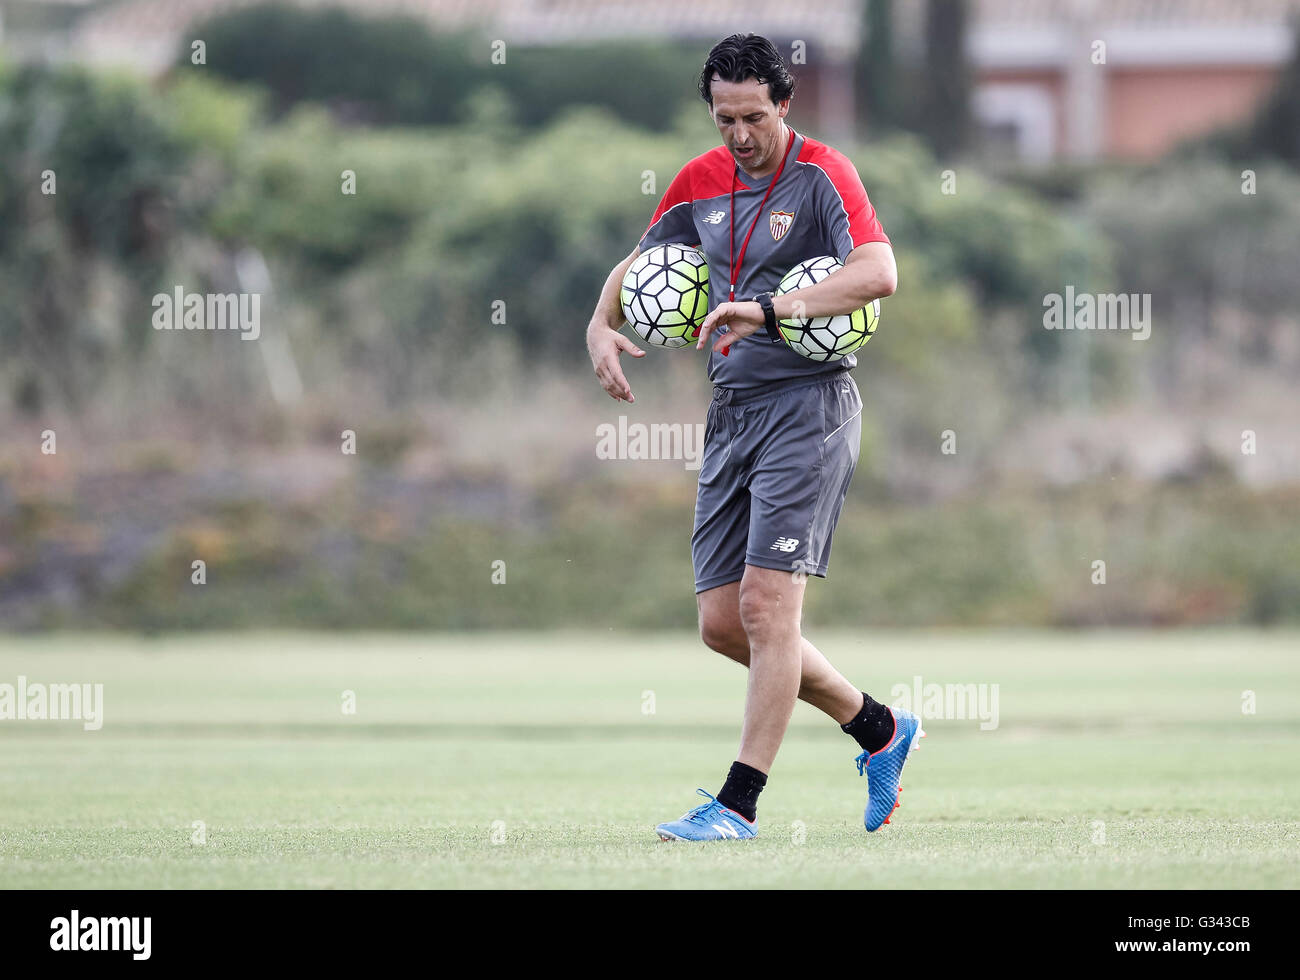 Unai Emery during the preparation of Sevilla FC before starting La Liga - Stock Image